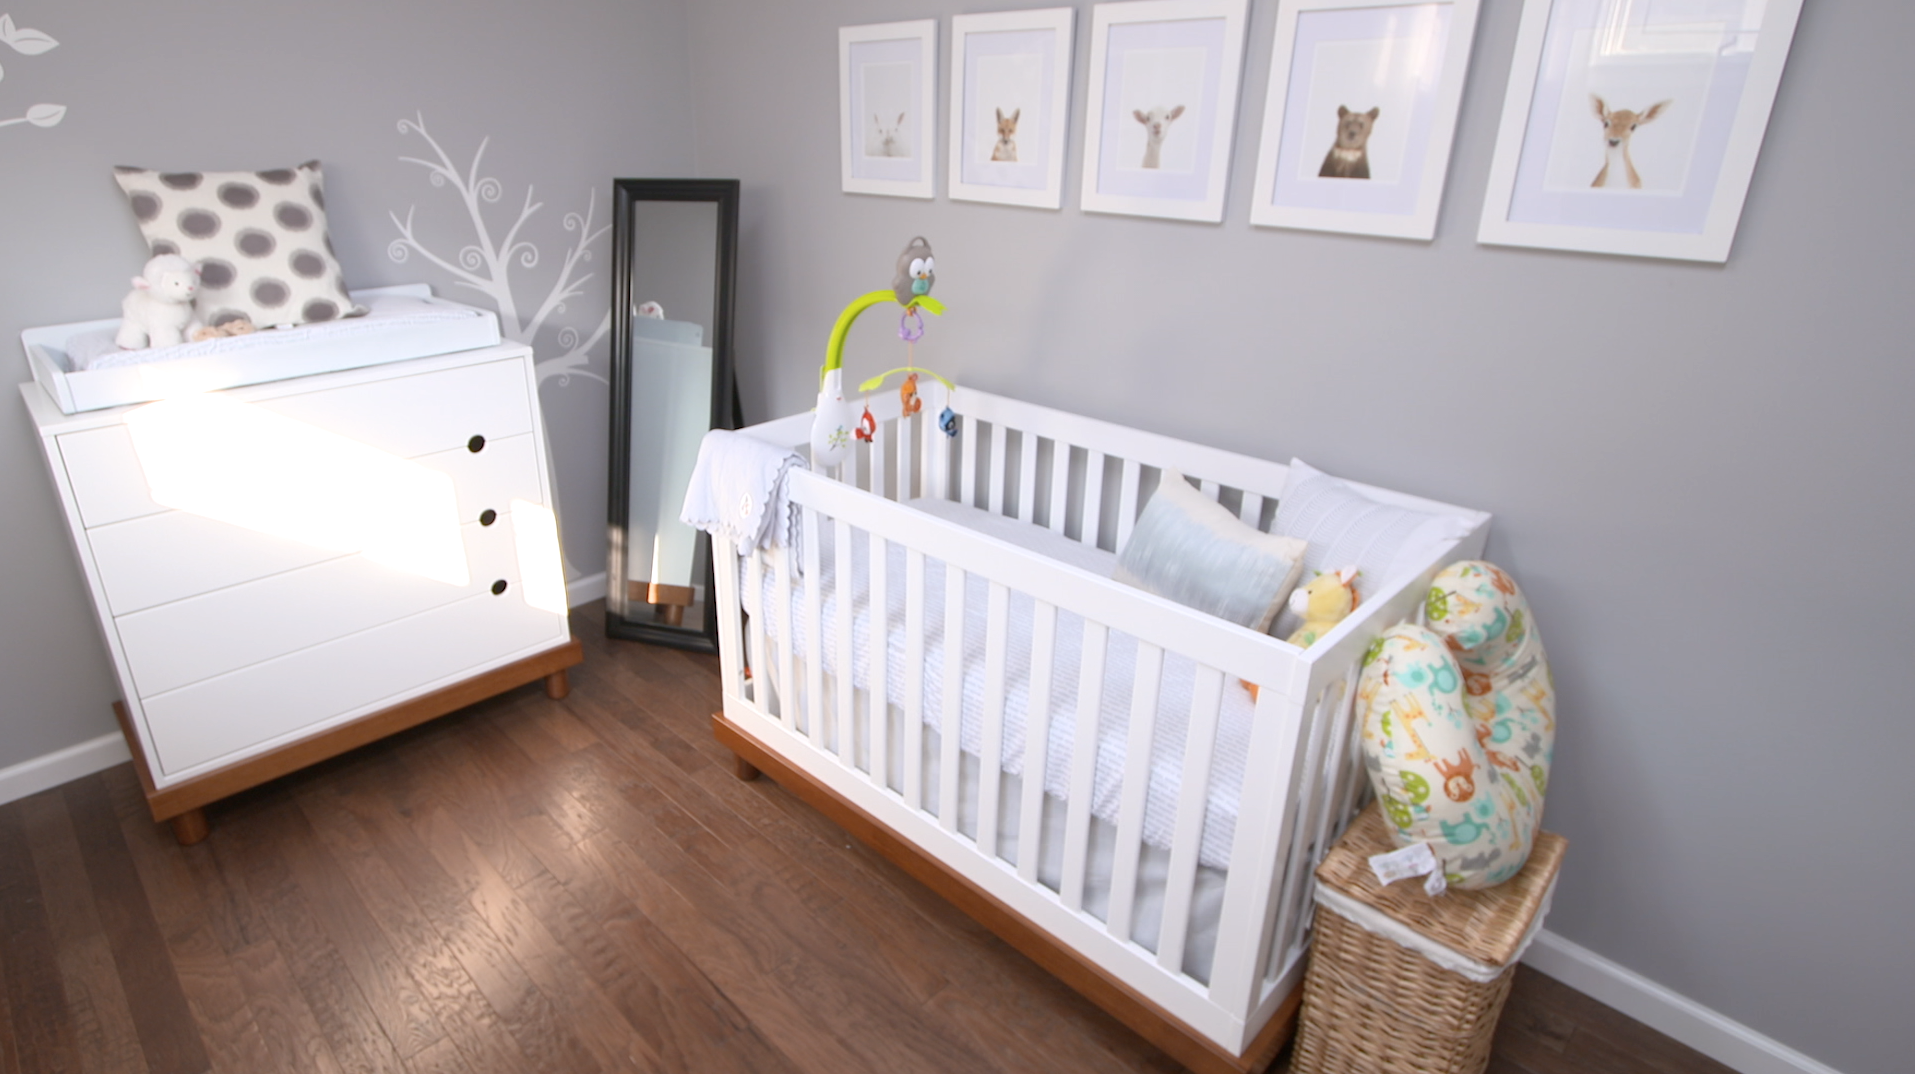 Must see before and after nursery makeover video for Simple nursery design